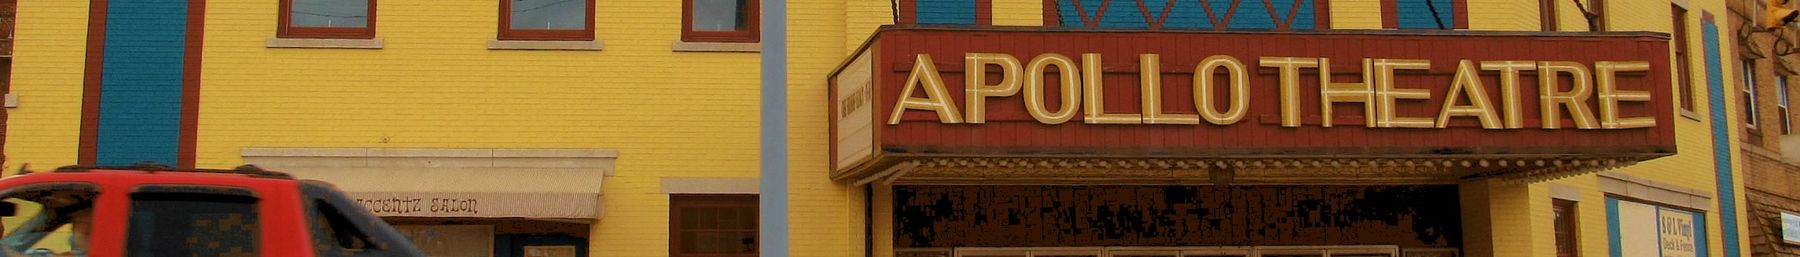 Appolo Theatre cinema